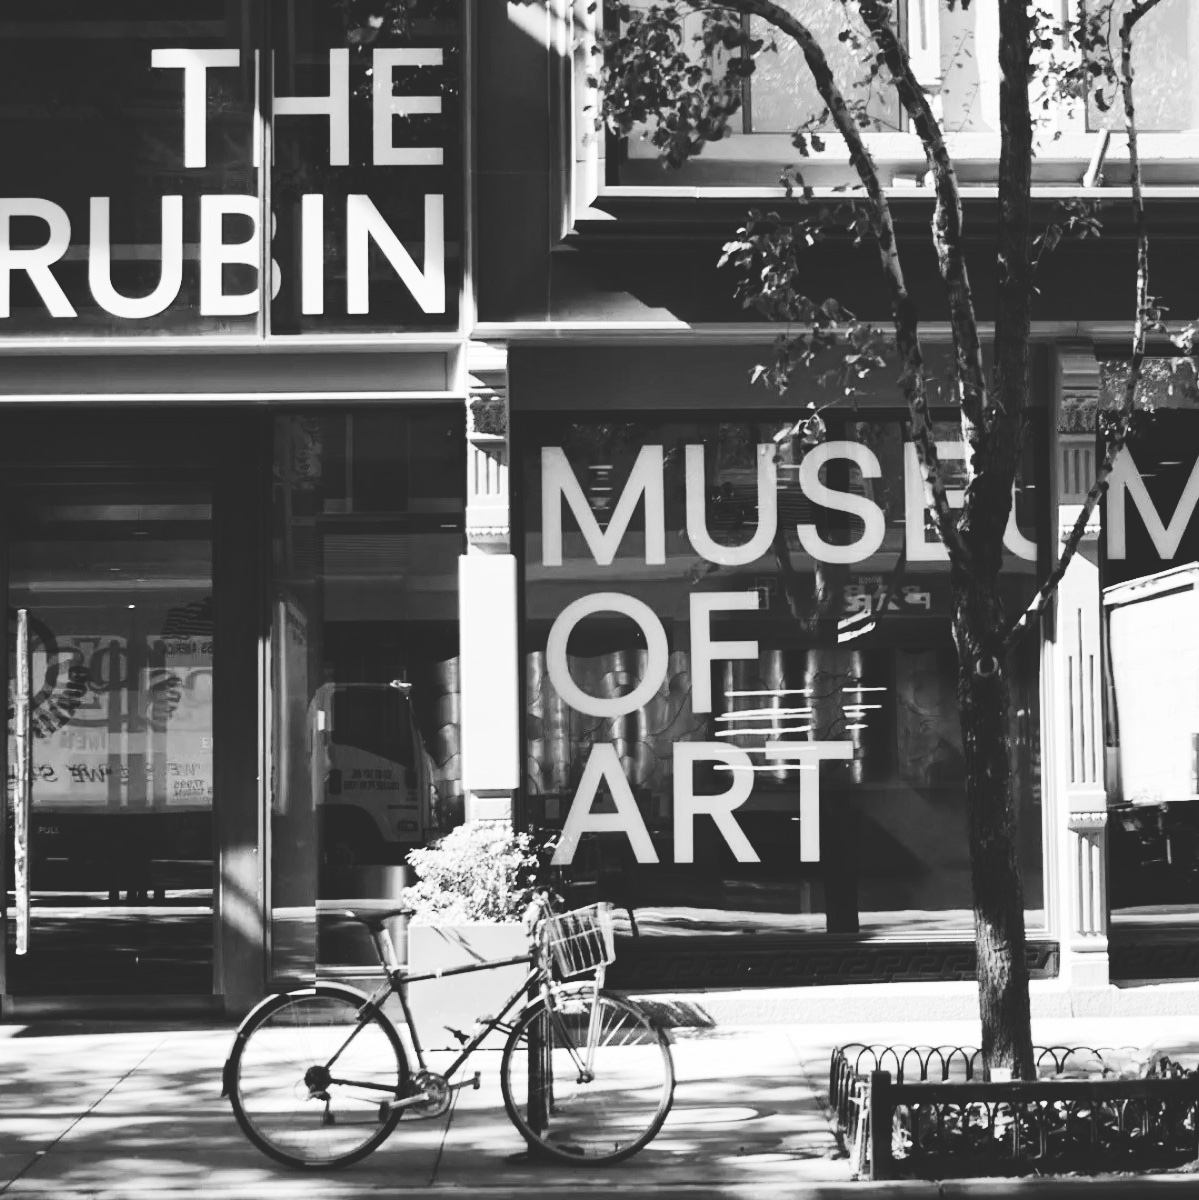 the rubin museum of art -